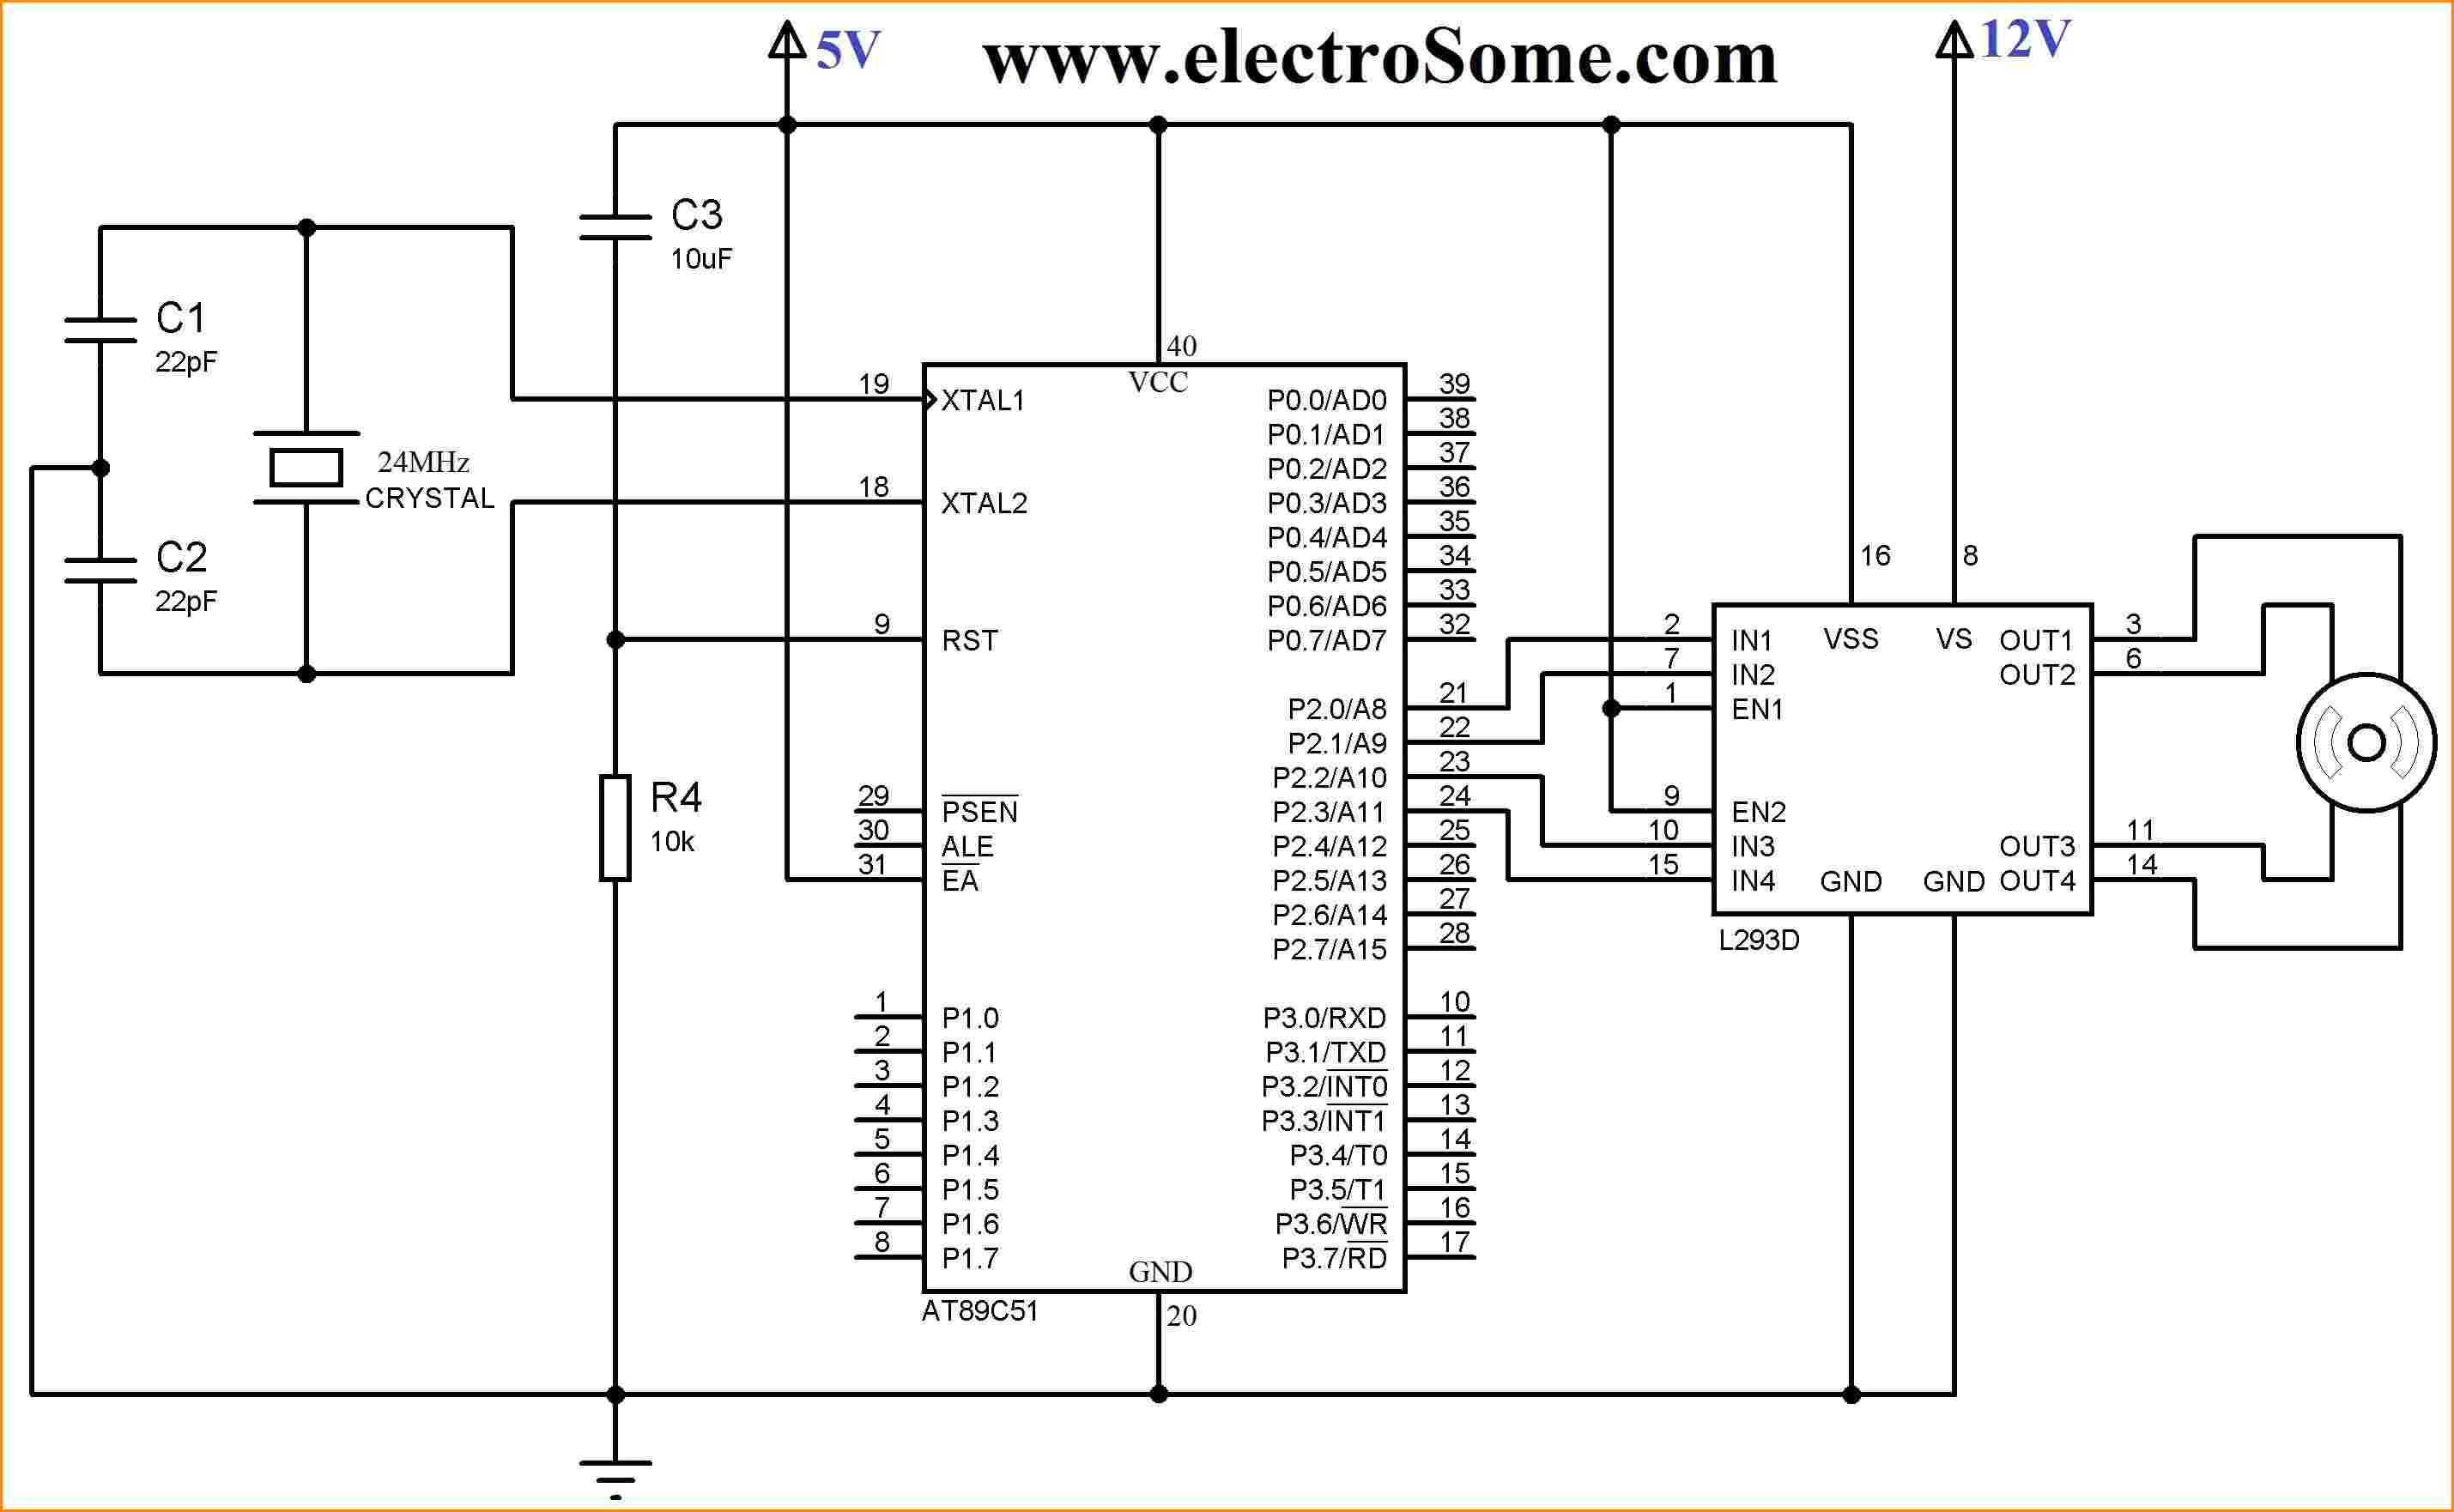 cmos camera wiring diagram Download-Cmos Camera Wiring Diagram Free Download Exceptional In At Cmos Camera Wiring Diagram 8-l